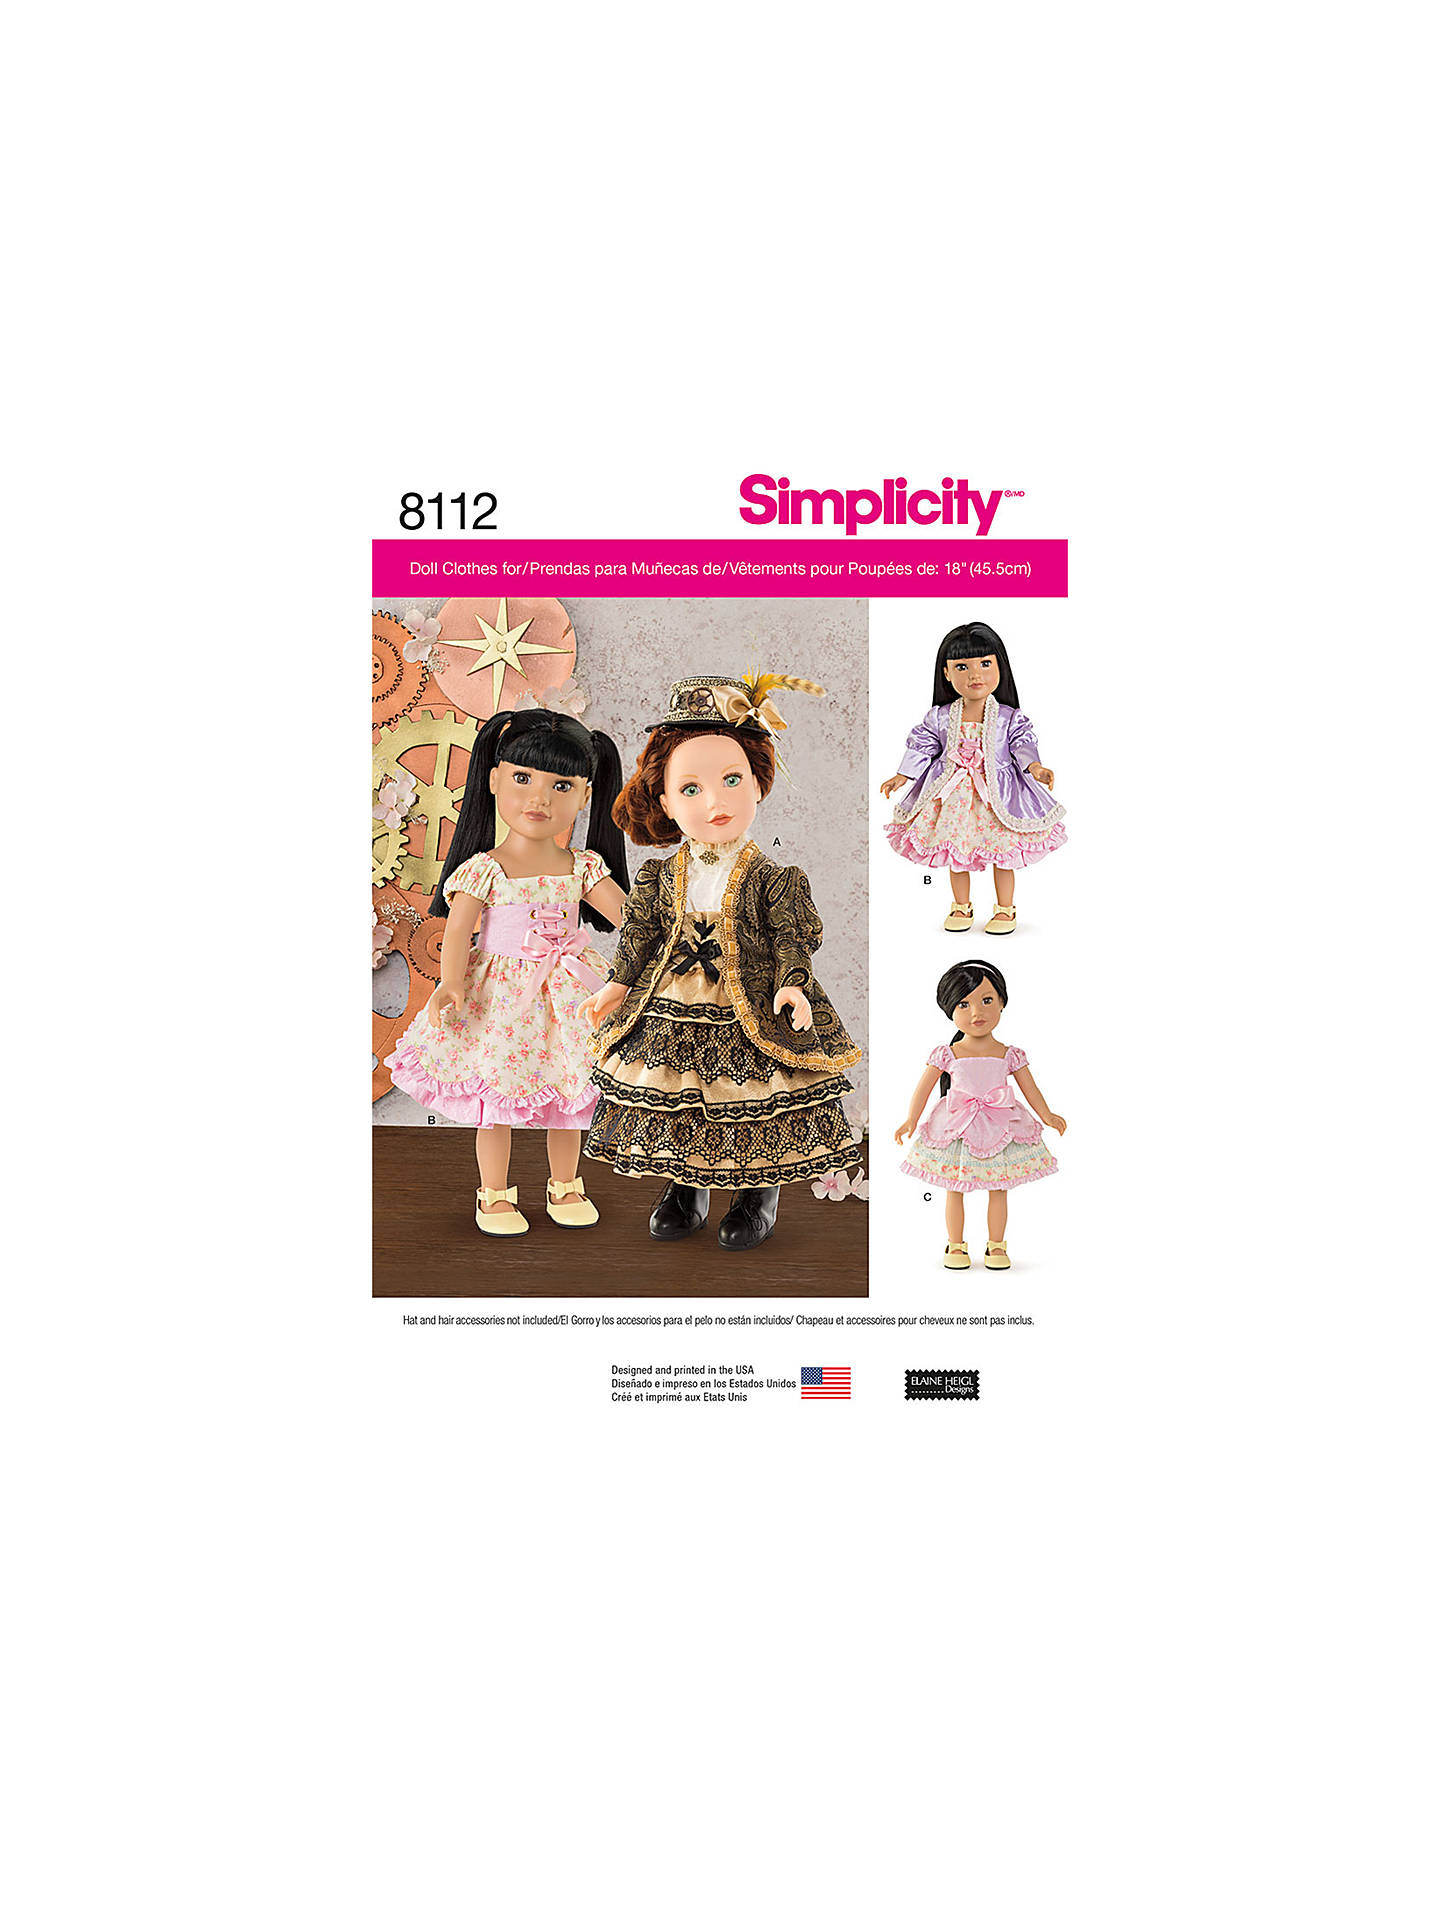 Simplicity Craft Victorian Doll Costume Sewing Pattern, 8112 at John ...